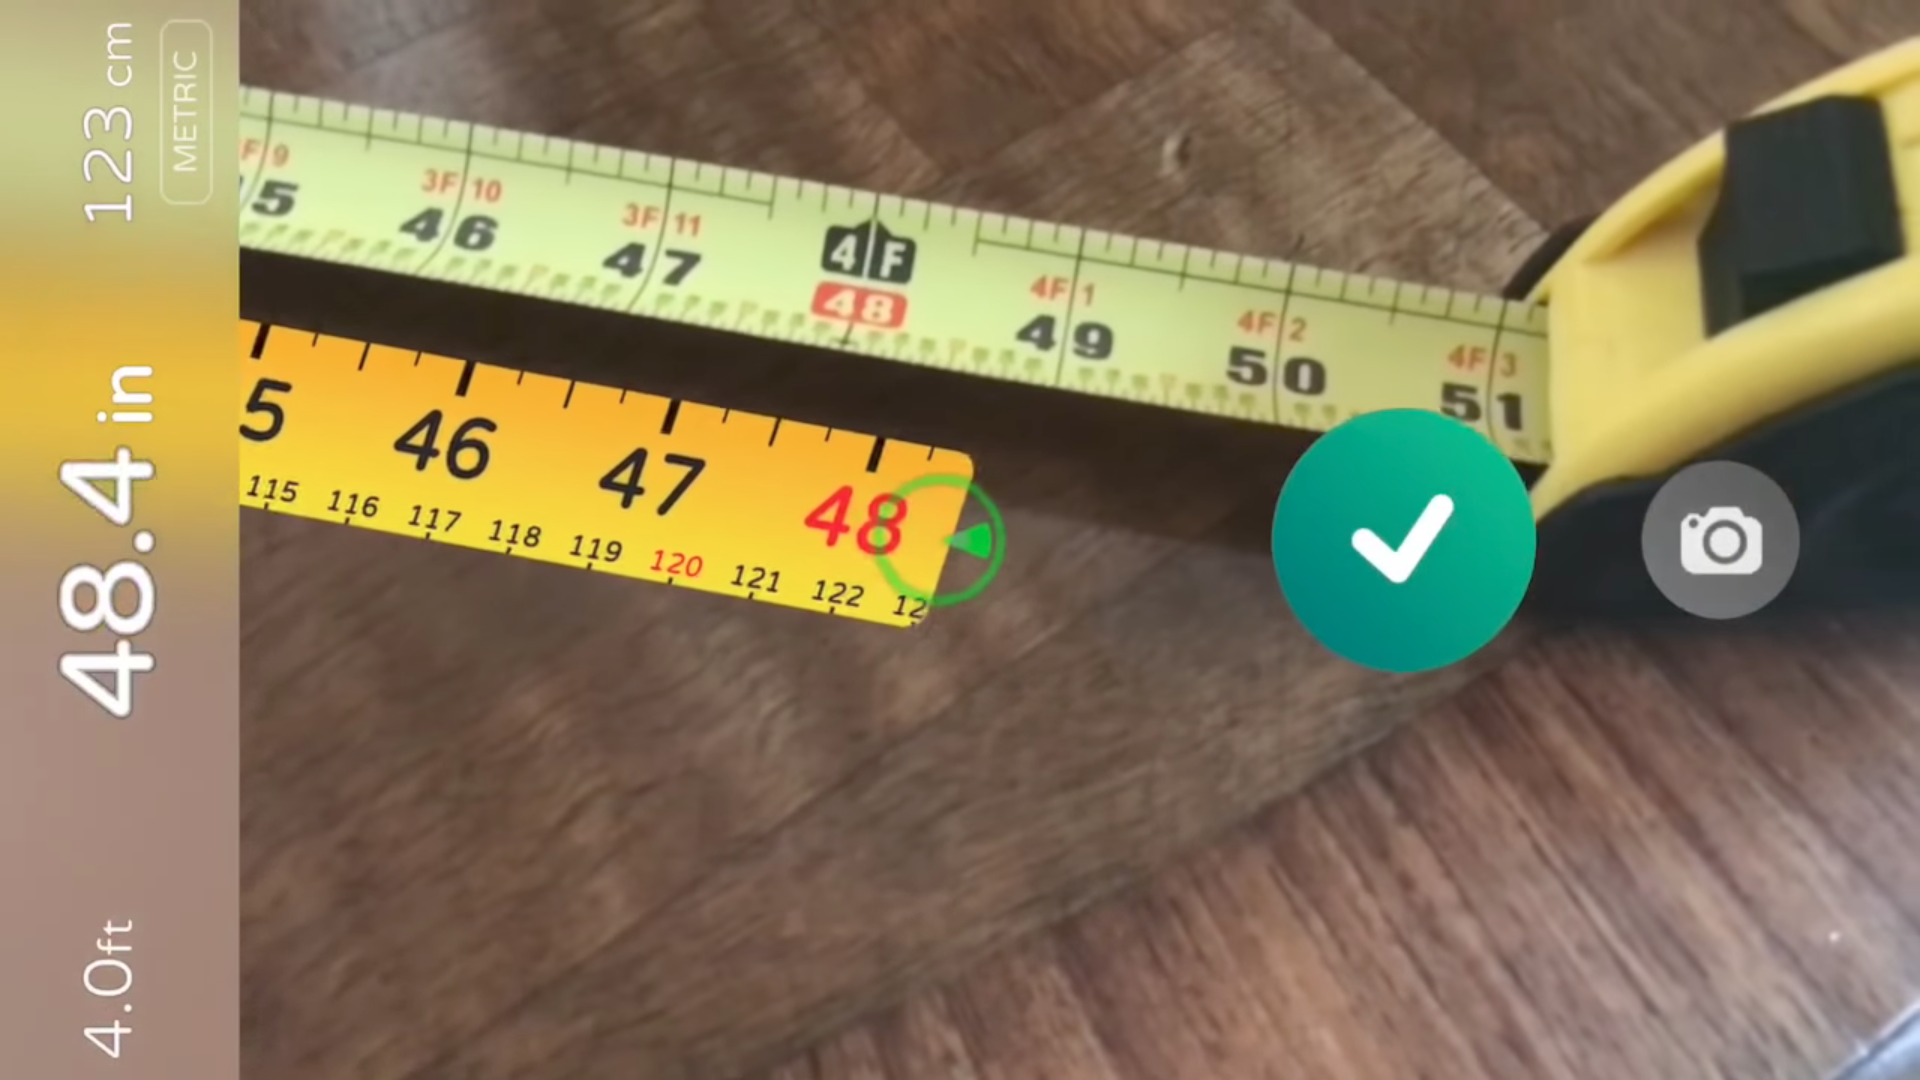 AR Measure turns your phone into a virtual measuring tape